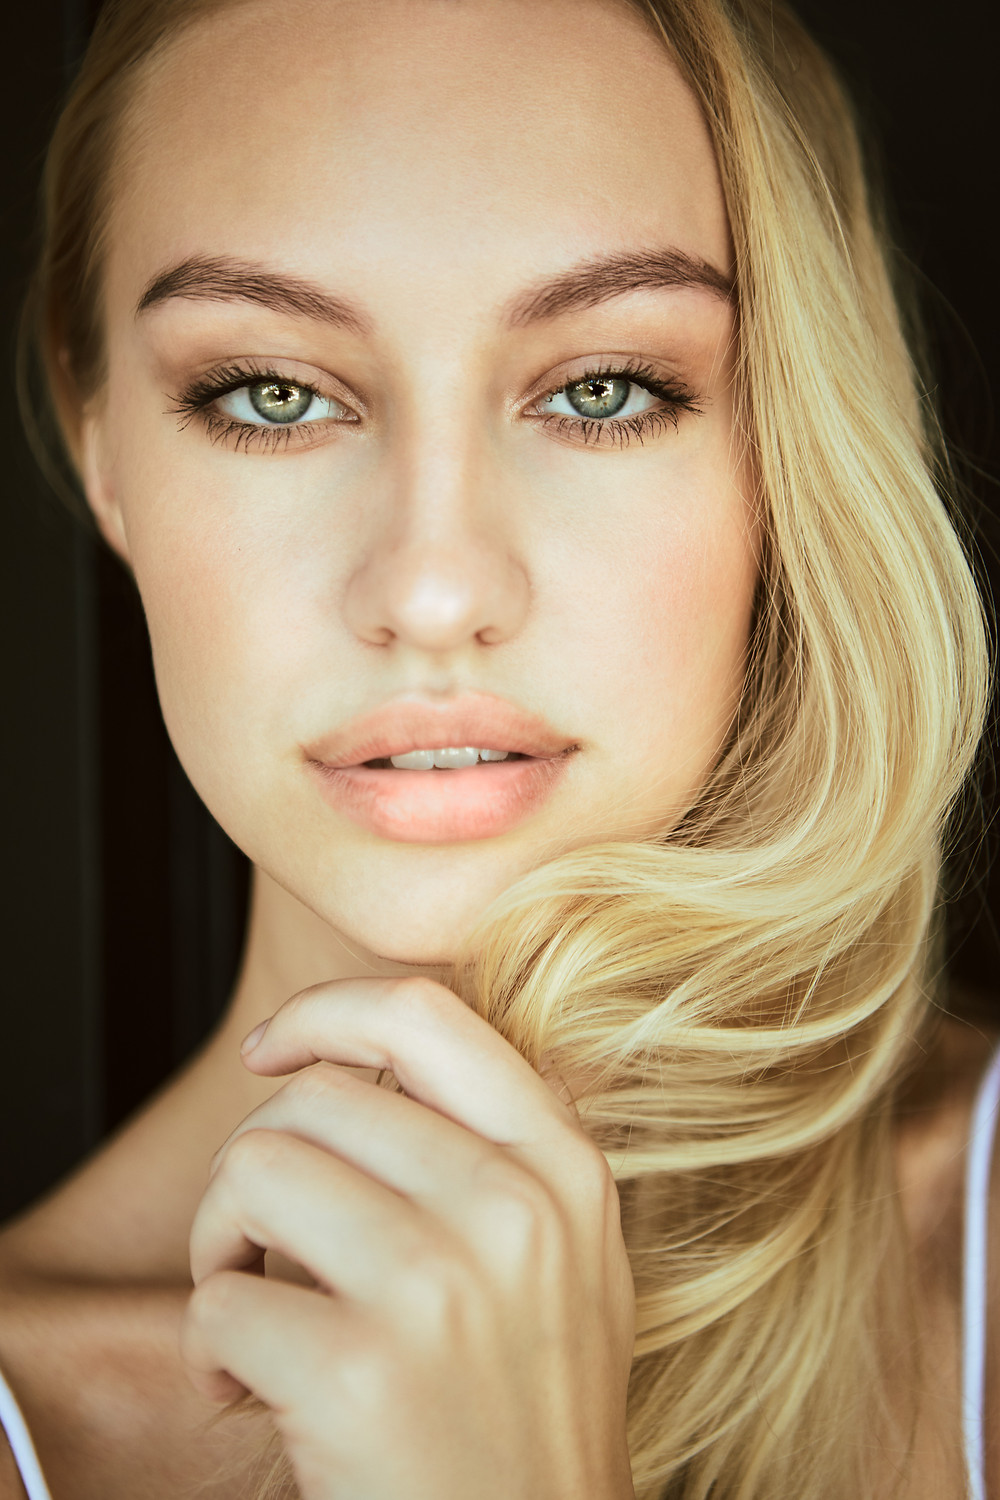 Swedish model Emelie MacInnes poses for a beauty photograph with striking green eyes, long blonde hair to one side, and soft natural lips by Los Angeles fashion photographer Patrick Patton.